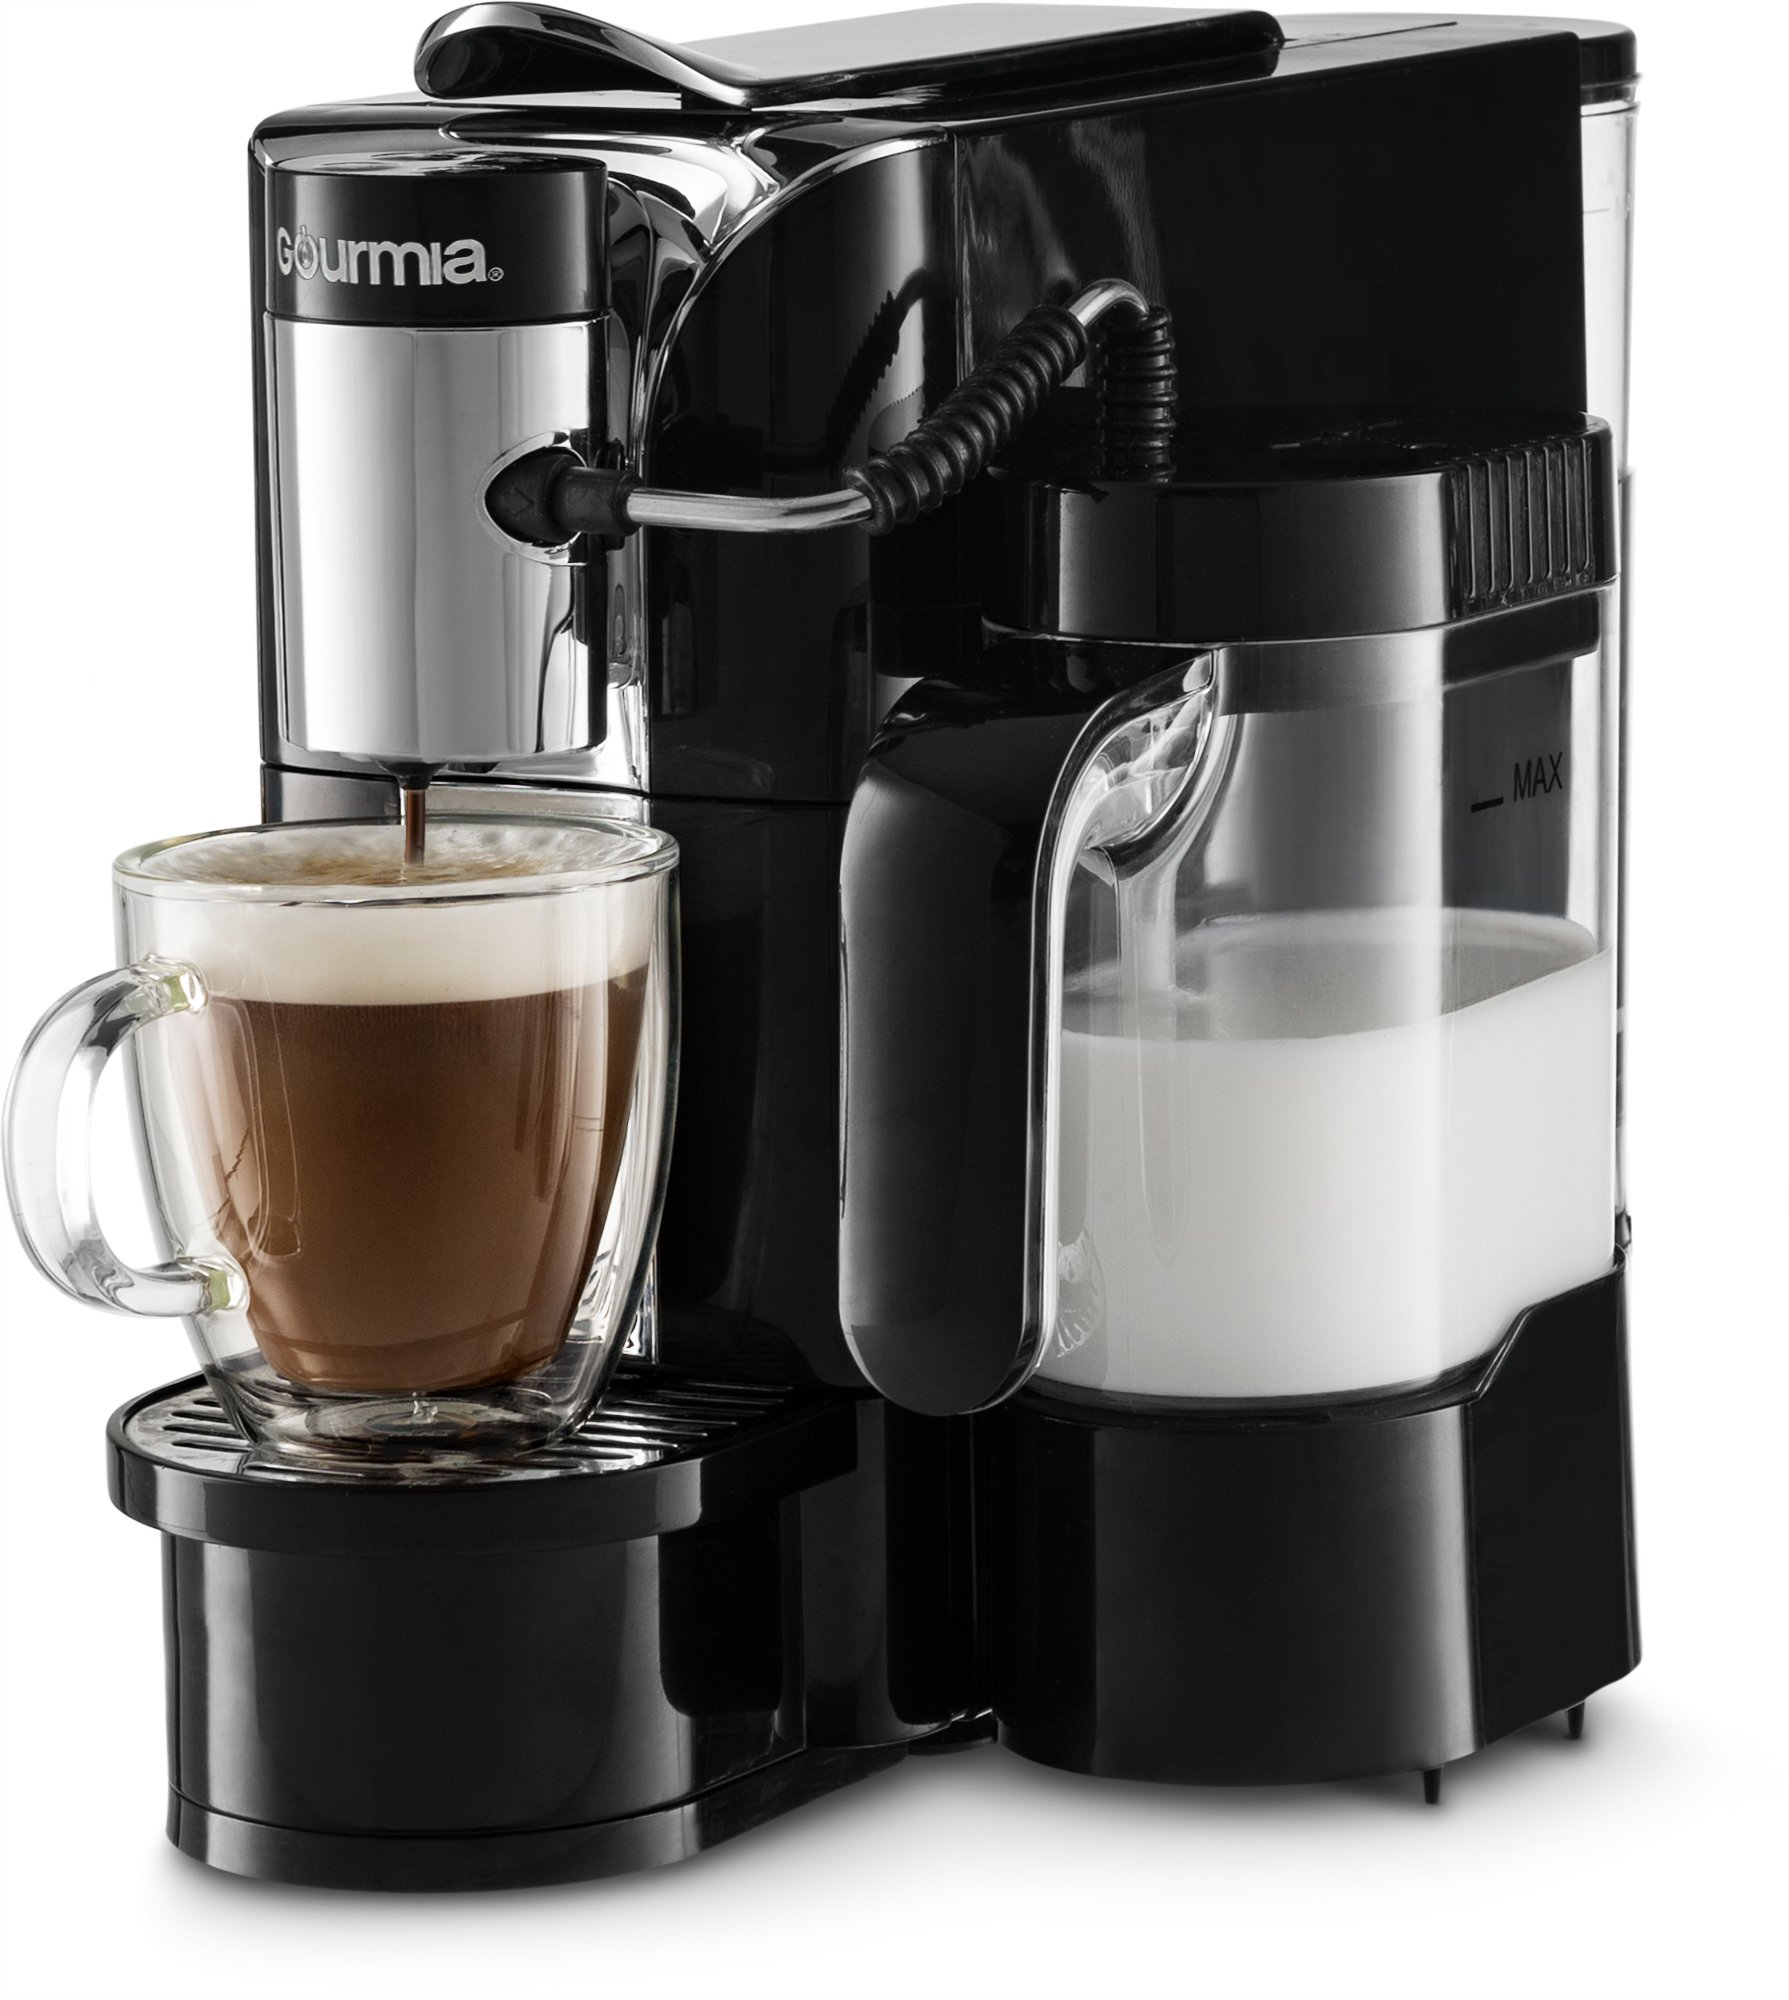 Gourmia GCM5500 - One Touch Automatic Espresso Cappuccino & Latte Maker Coffee Machine - Brew, Froth Milk, and Mix Into Cup with the Push of One Button- Nespresso Compatible